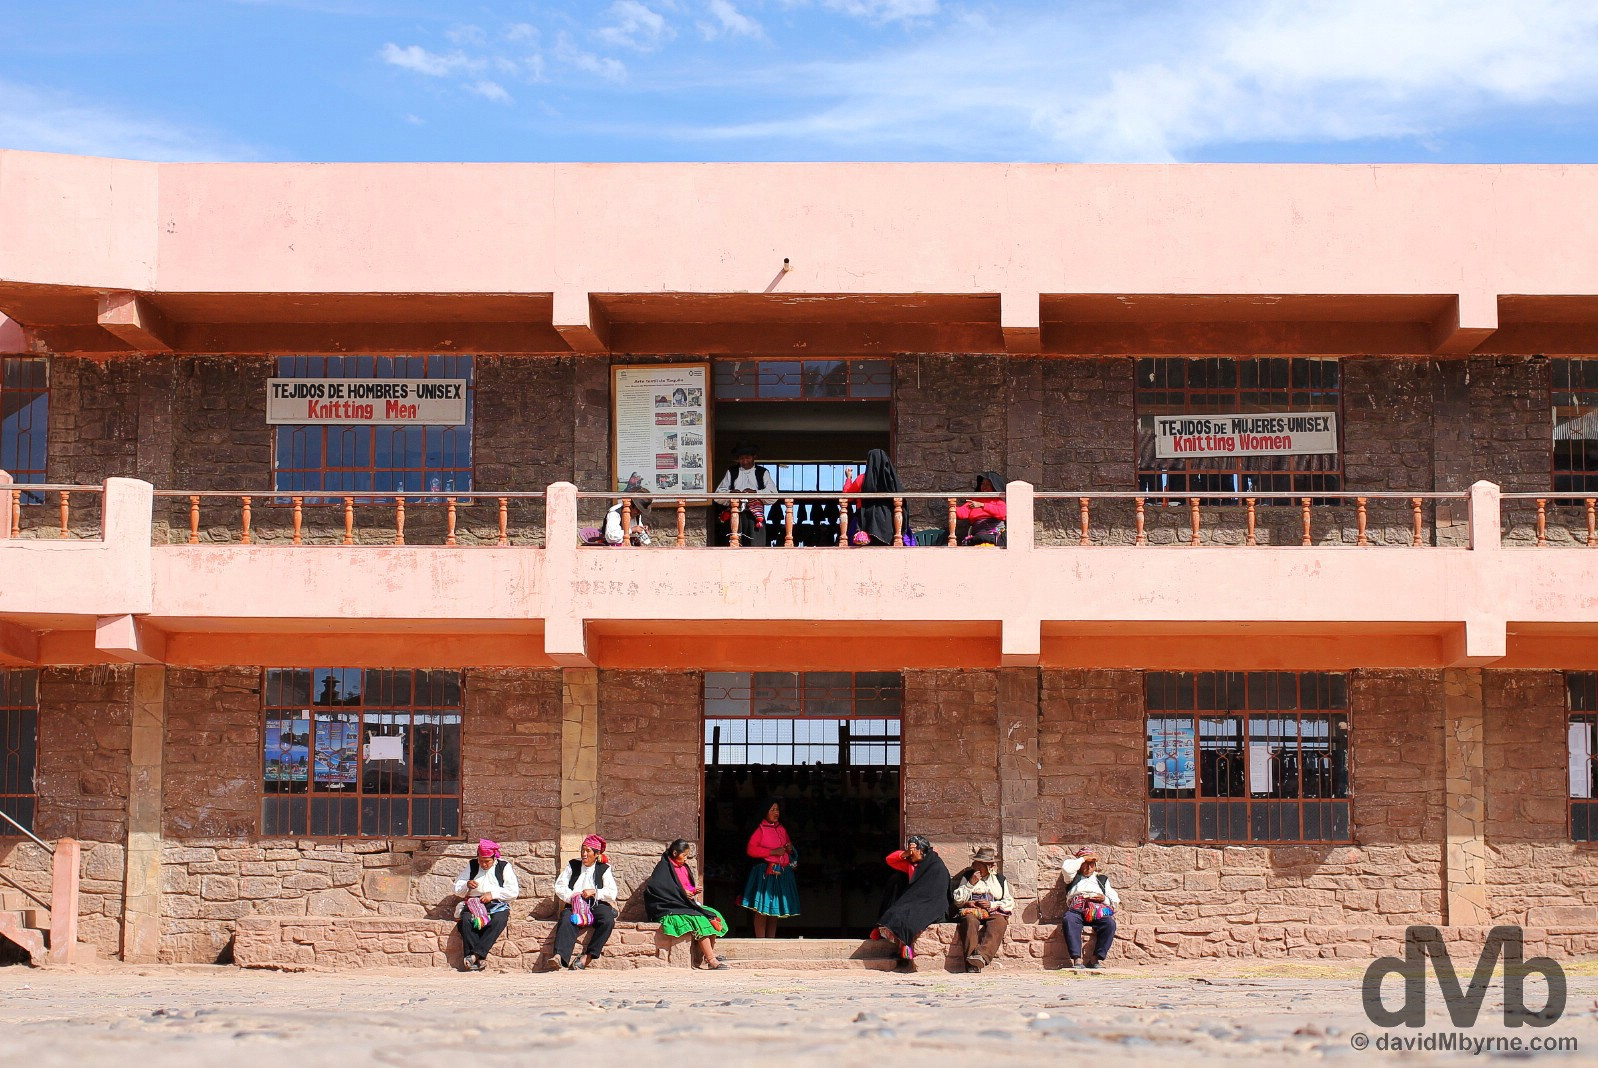 Locals sitting outside a weaving market in the main square of Taquile Island, Lake Titicaca, Peru. August 20, 2015.